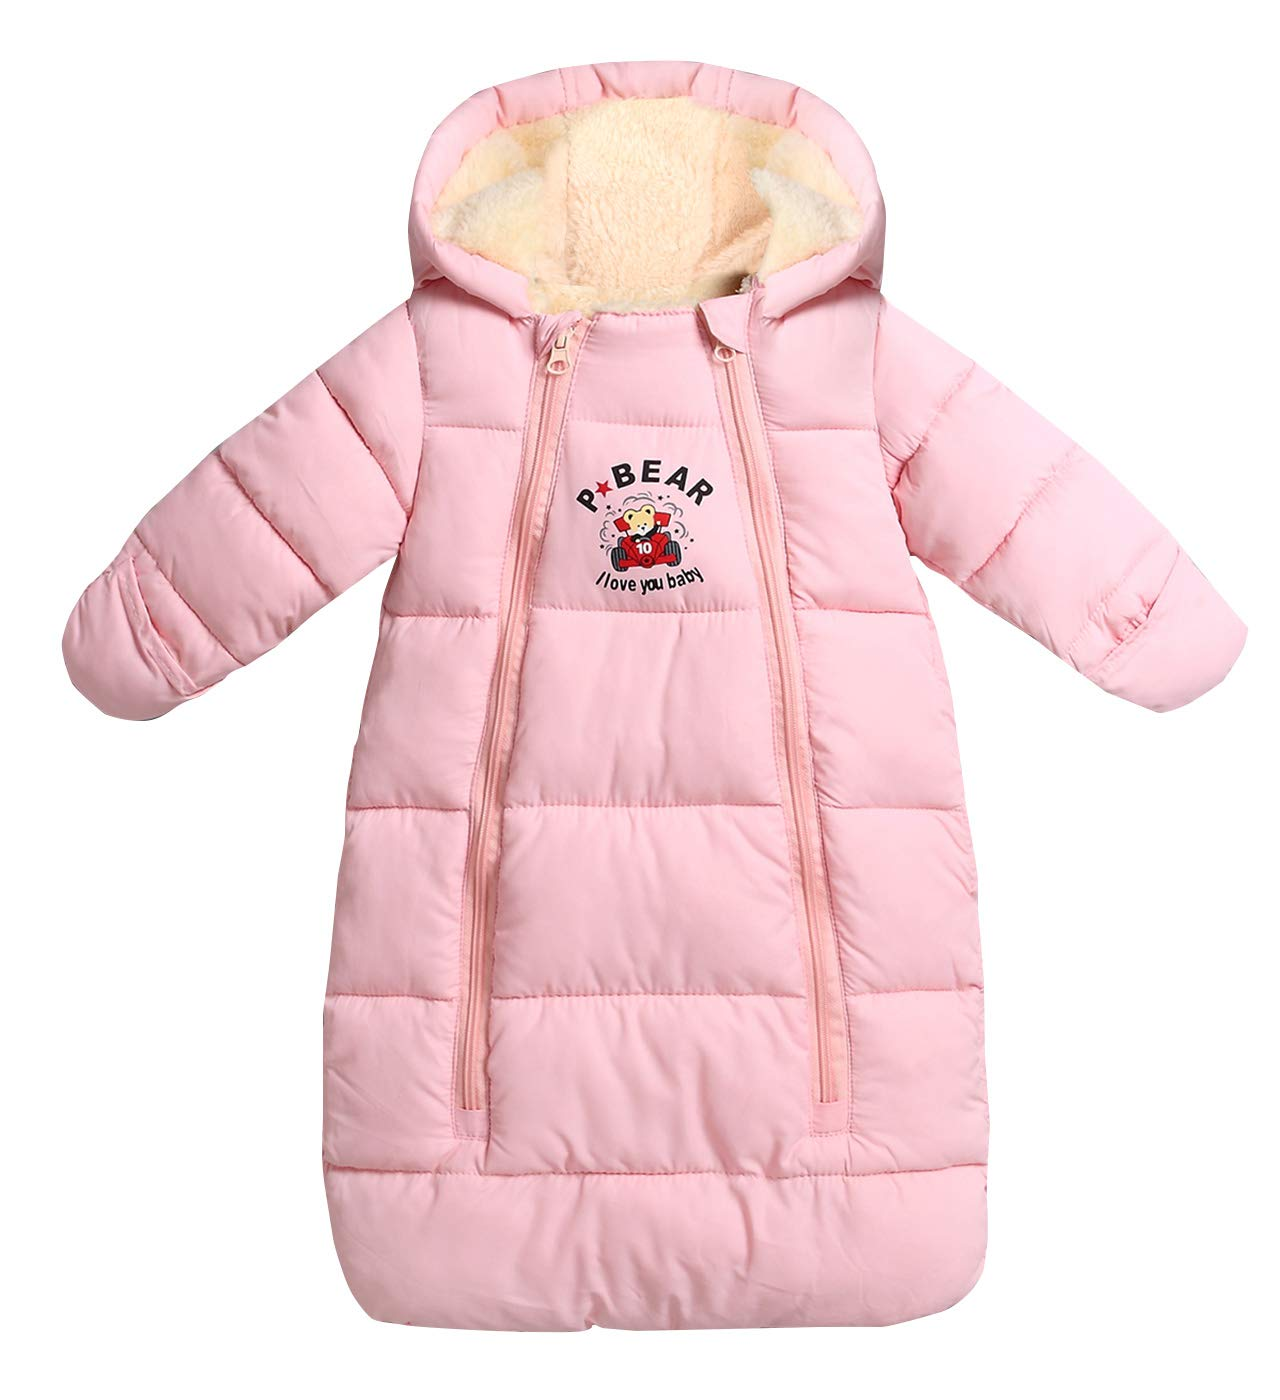 Aivtalk Baby Sleeping Bag Winter Snowsuit Warm Hooded Loose Fit One Piece Coat Outerwear Winter Wearable Blanket 6-18 Months Pink by Aivtalk